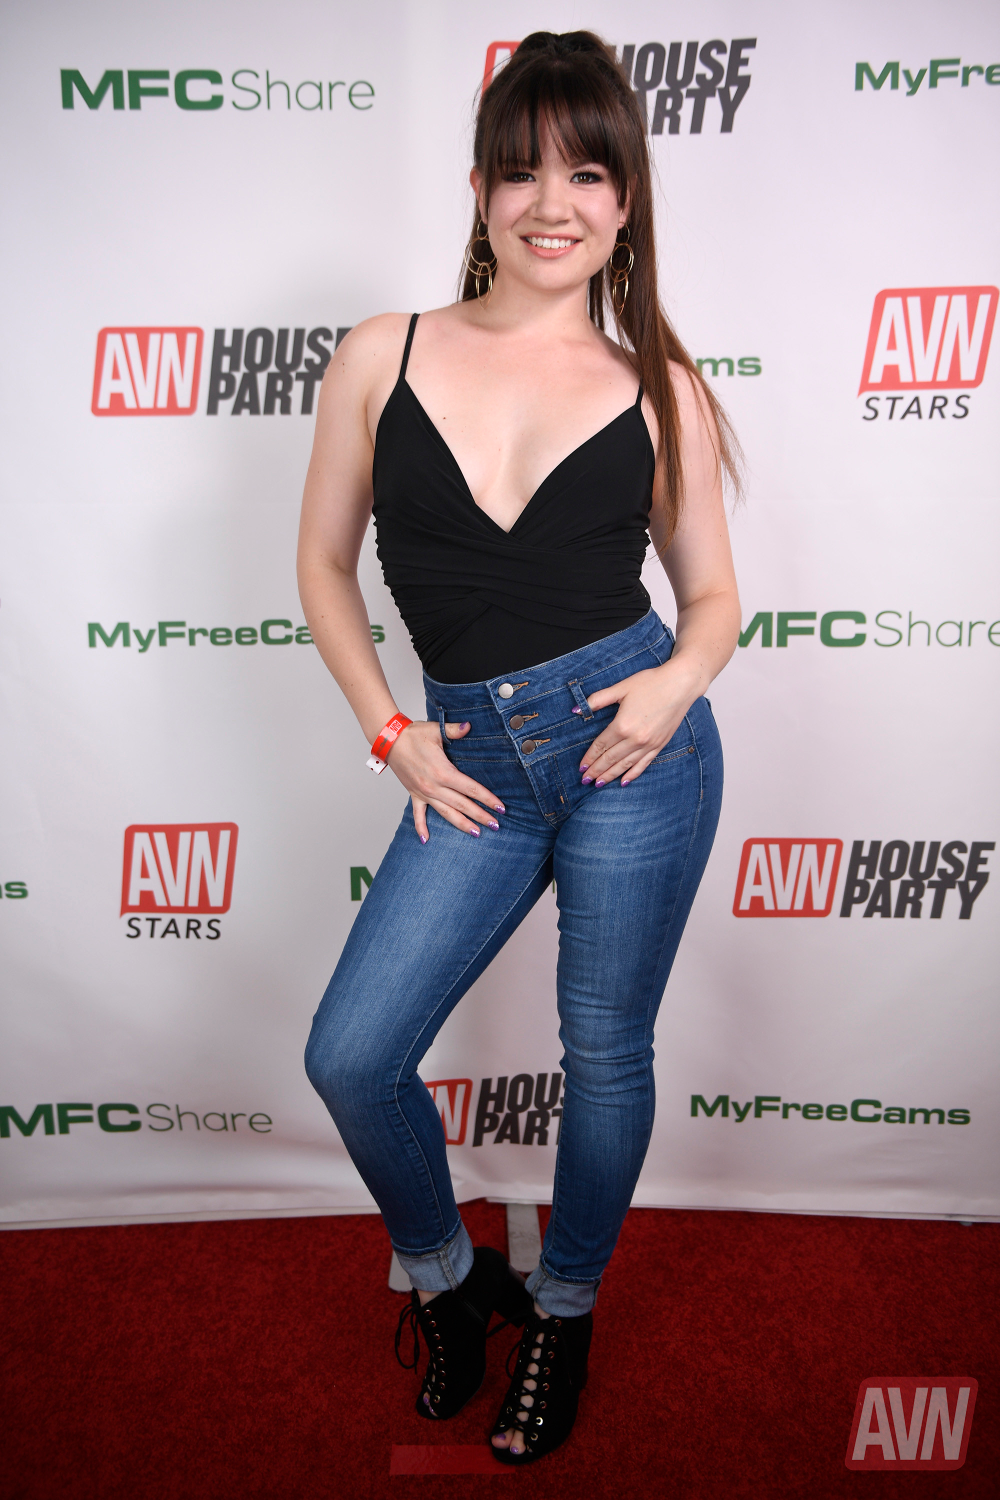 Alison Rey alison rey | adult stars 8 in 2019 | house party, s star, women